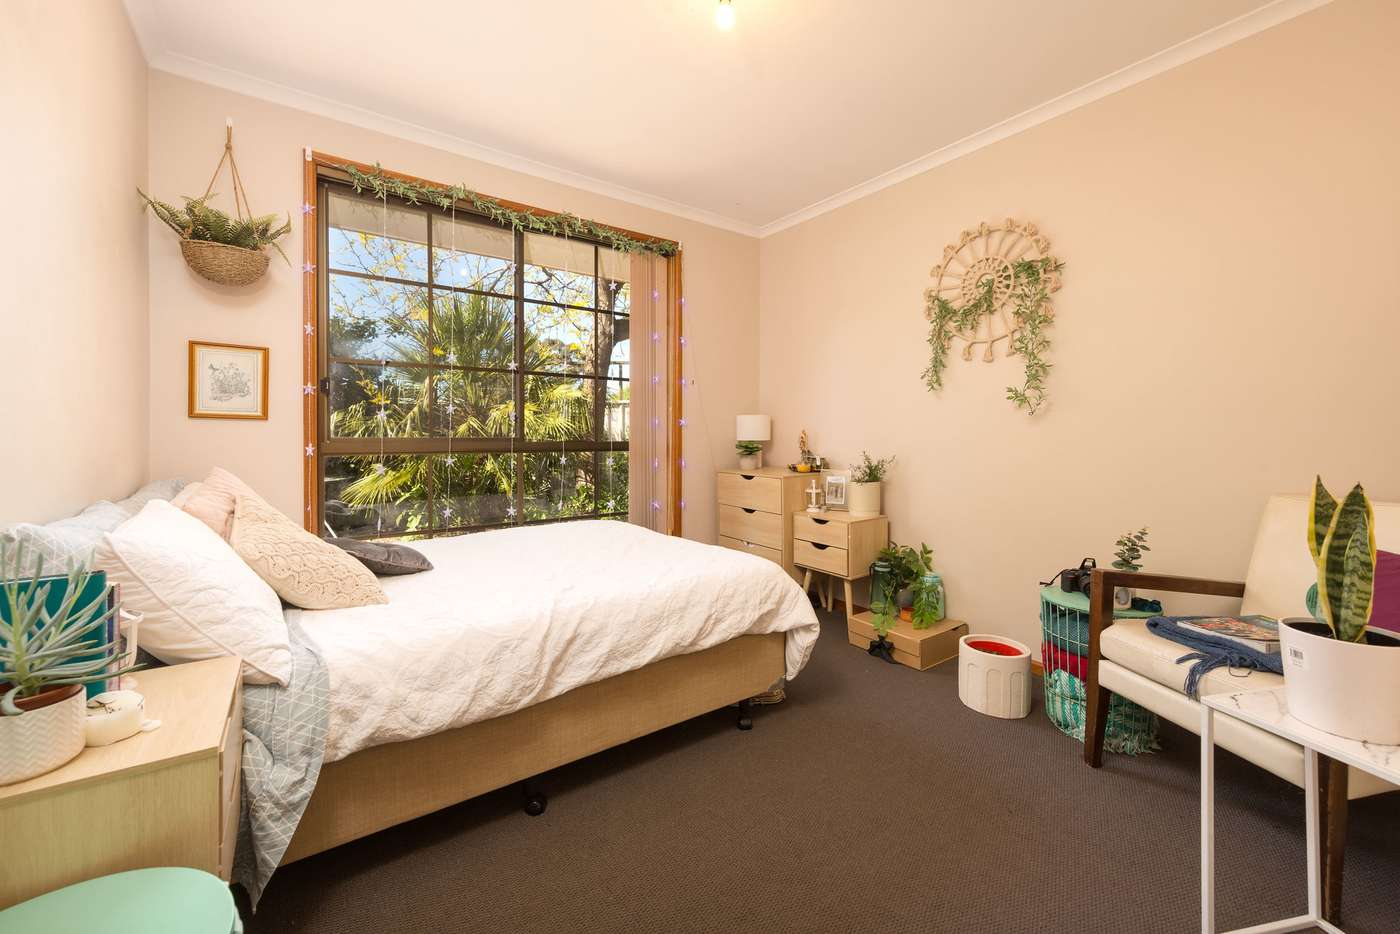 Seventh view of Homely house listing, 9 Yanco Court, Wodonga VIC 3690